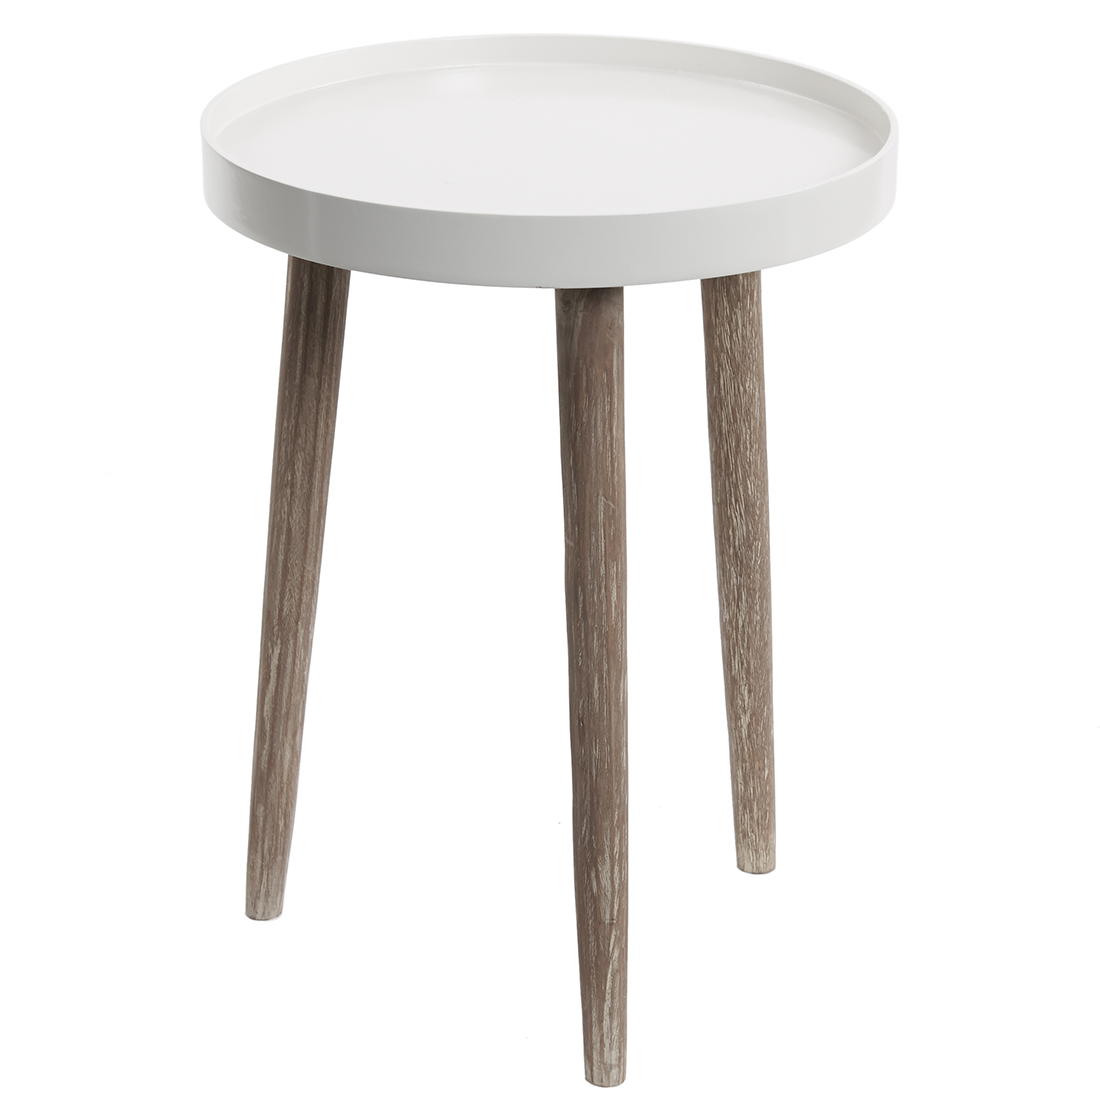 amazing small white side table southwold round tray tobs accent ikea home entranching modern coffee tables and storage console with doors rustic carsons furniture pier one area